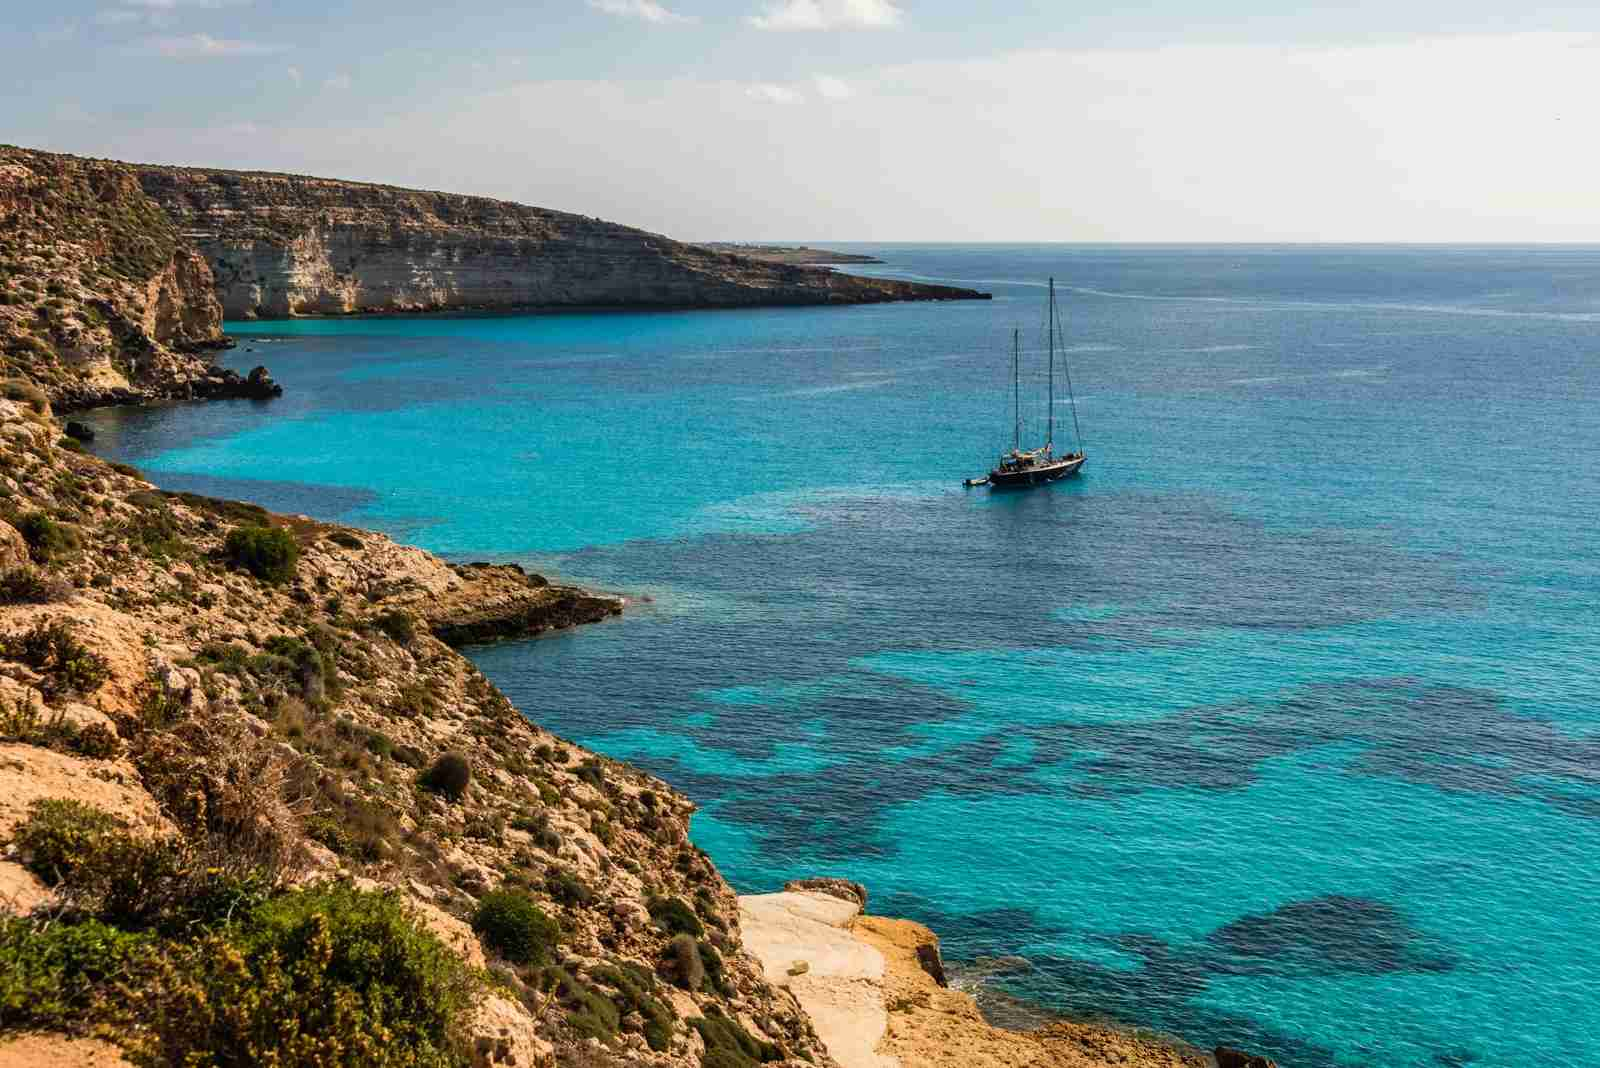 Rabbit Beach in Lampedusa, Pelagie Islands. (Photo by Vansky / Shutterstock)